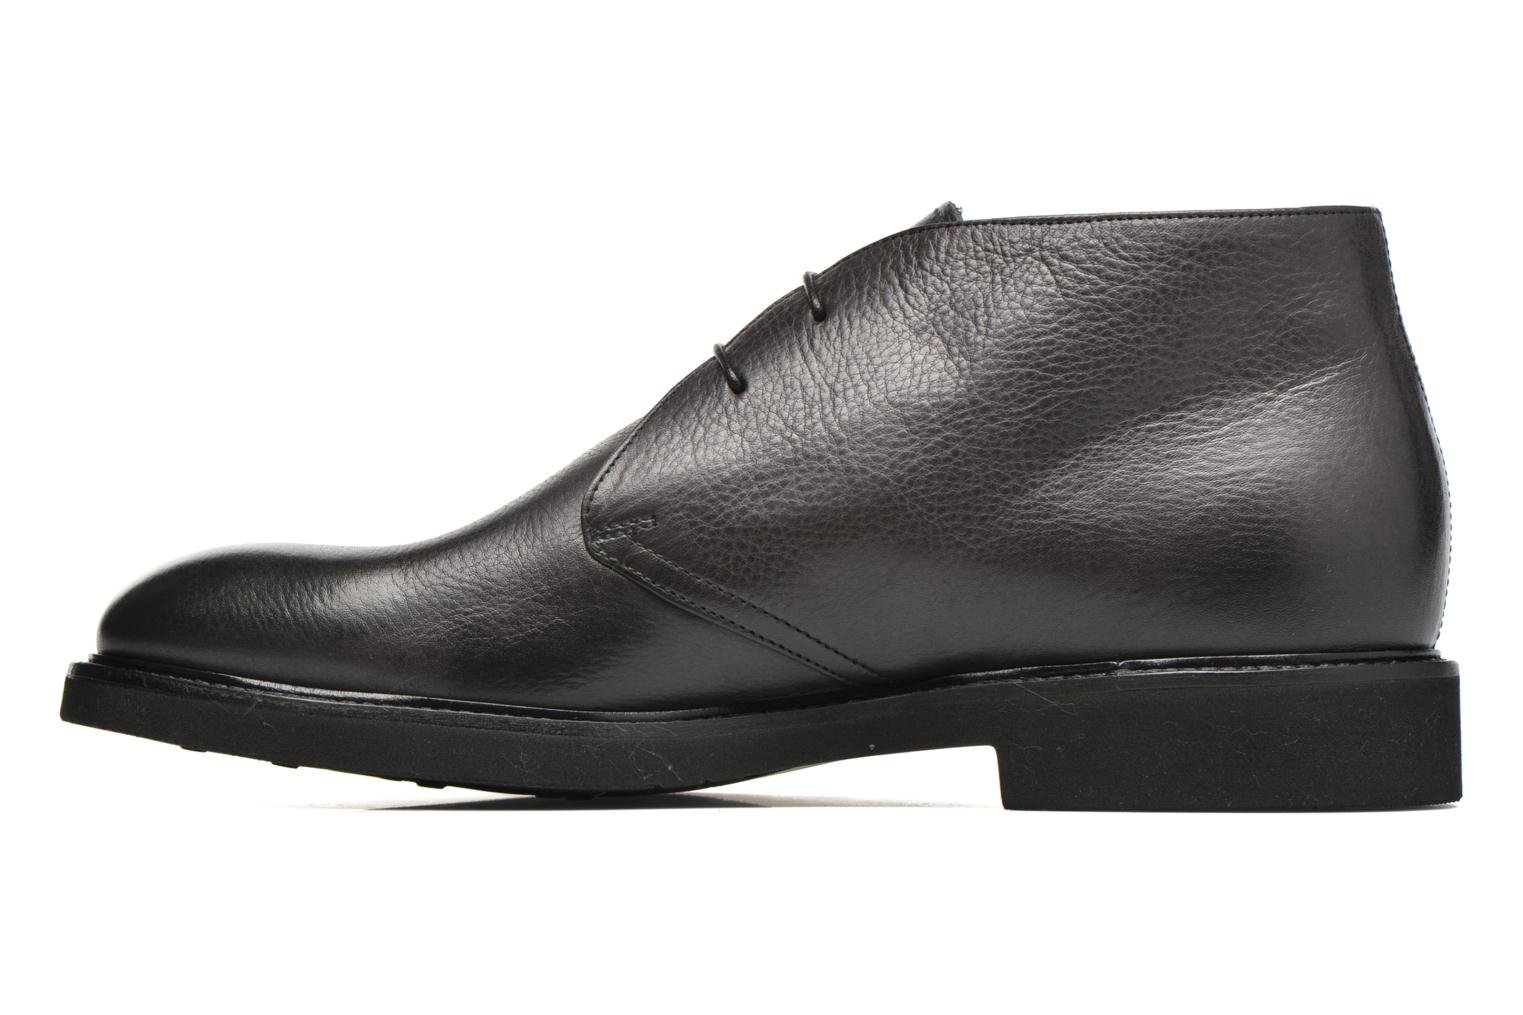 Bruno Verona Royal Taureau Anthracite